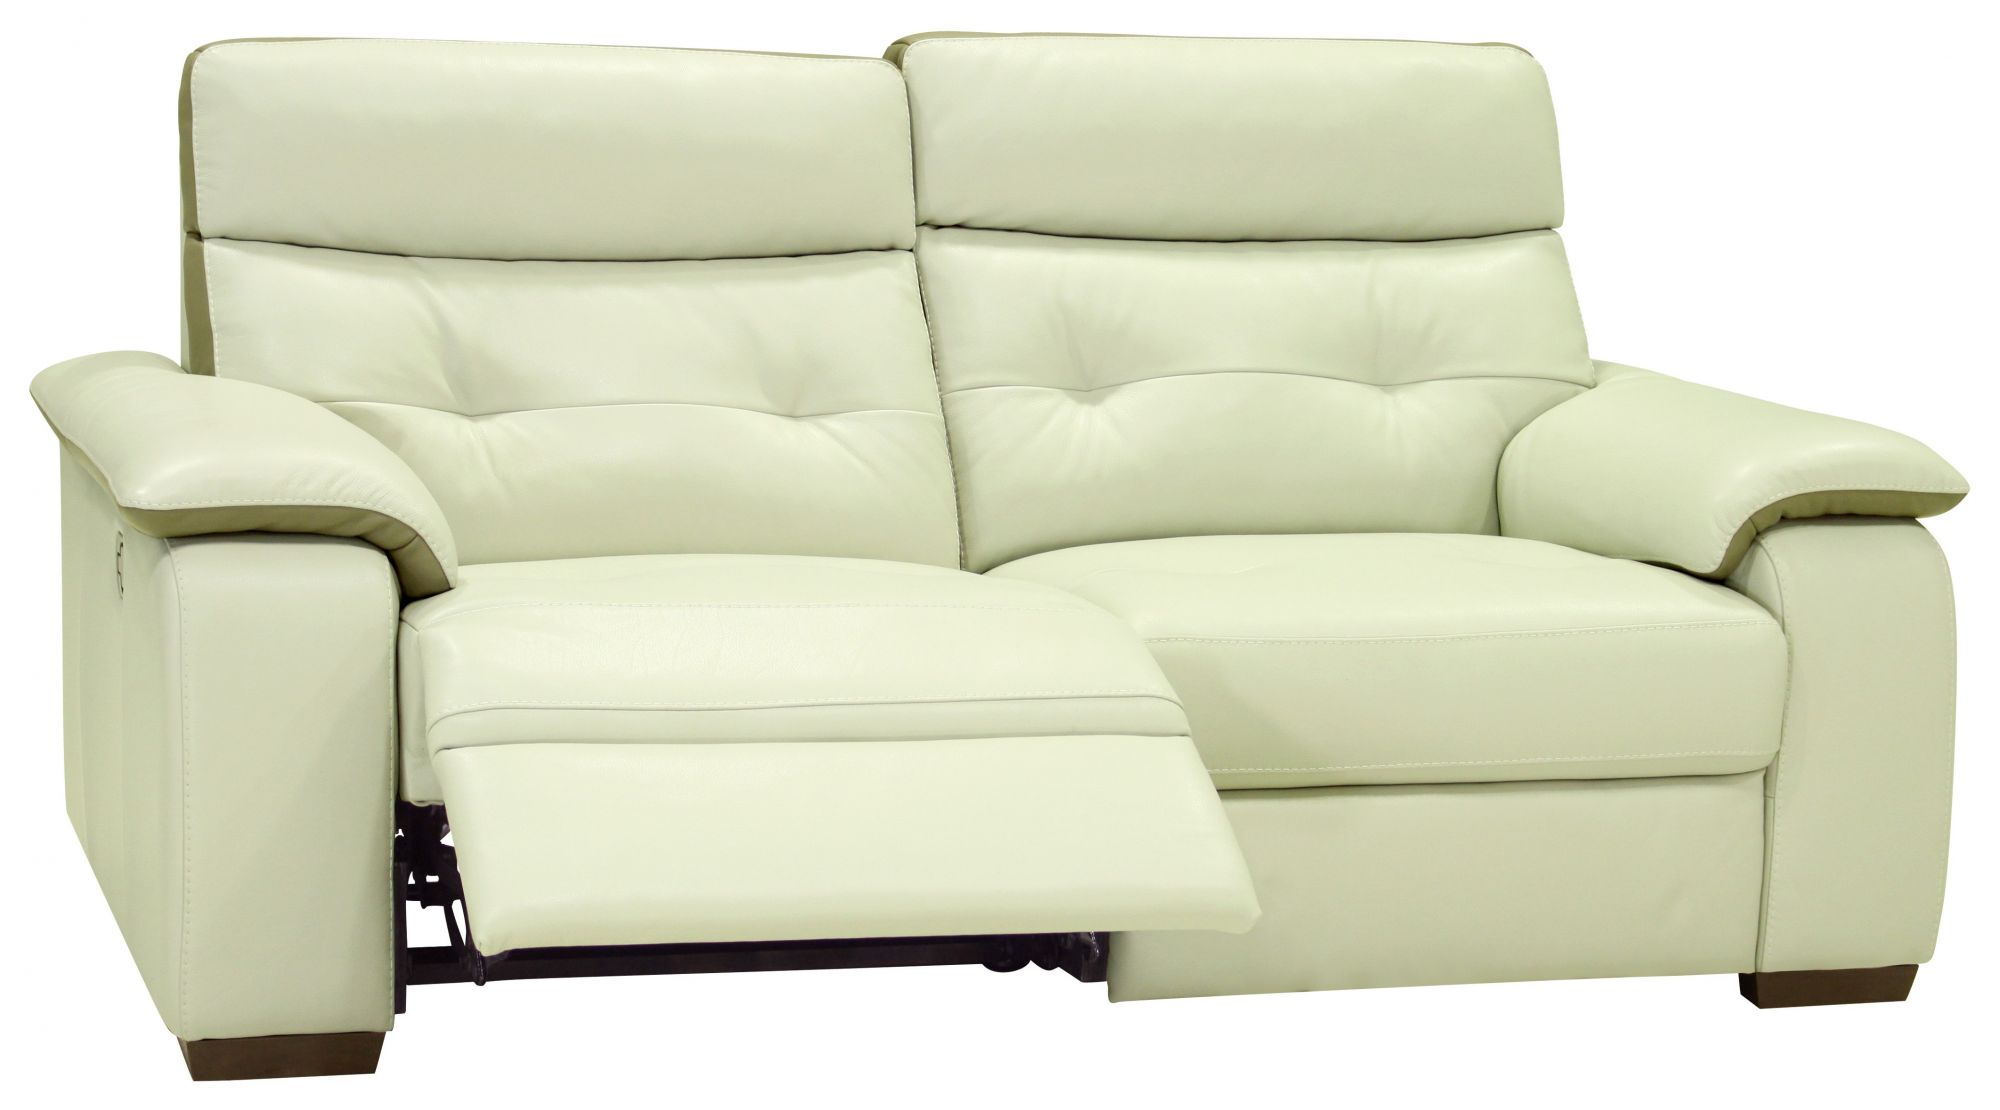 Living Homes Collection Living Homes Miami 2 5 Seater Sofa